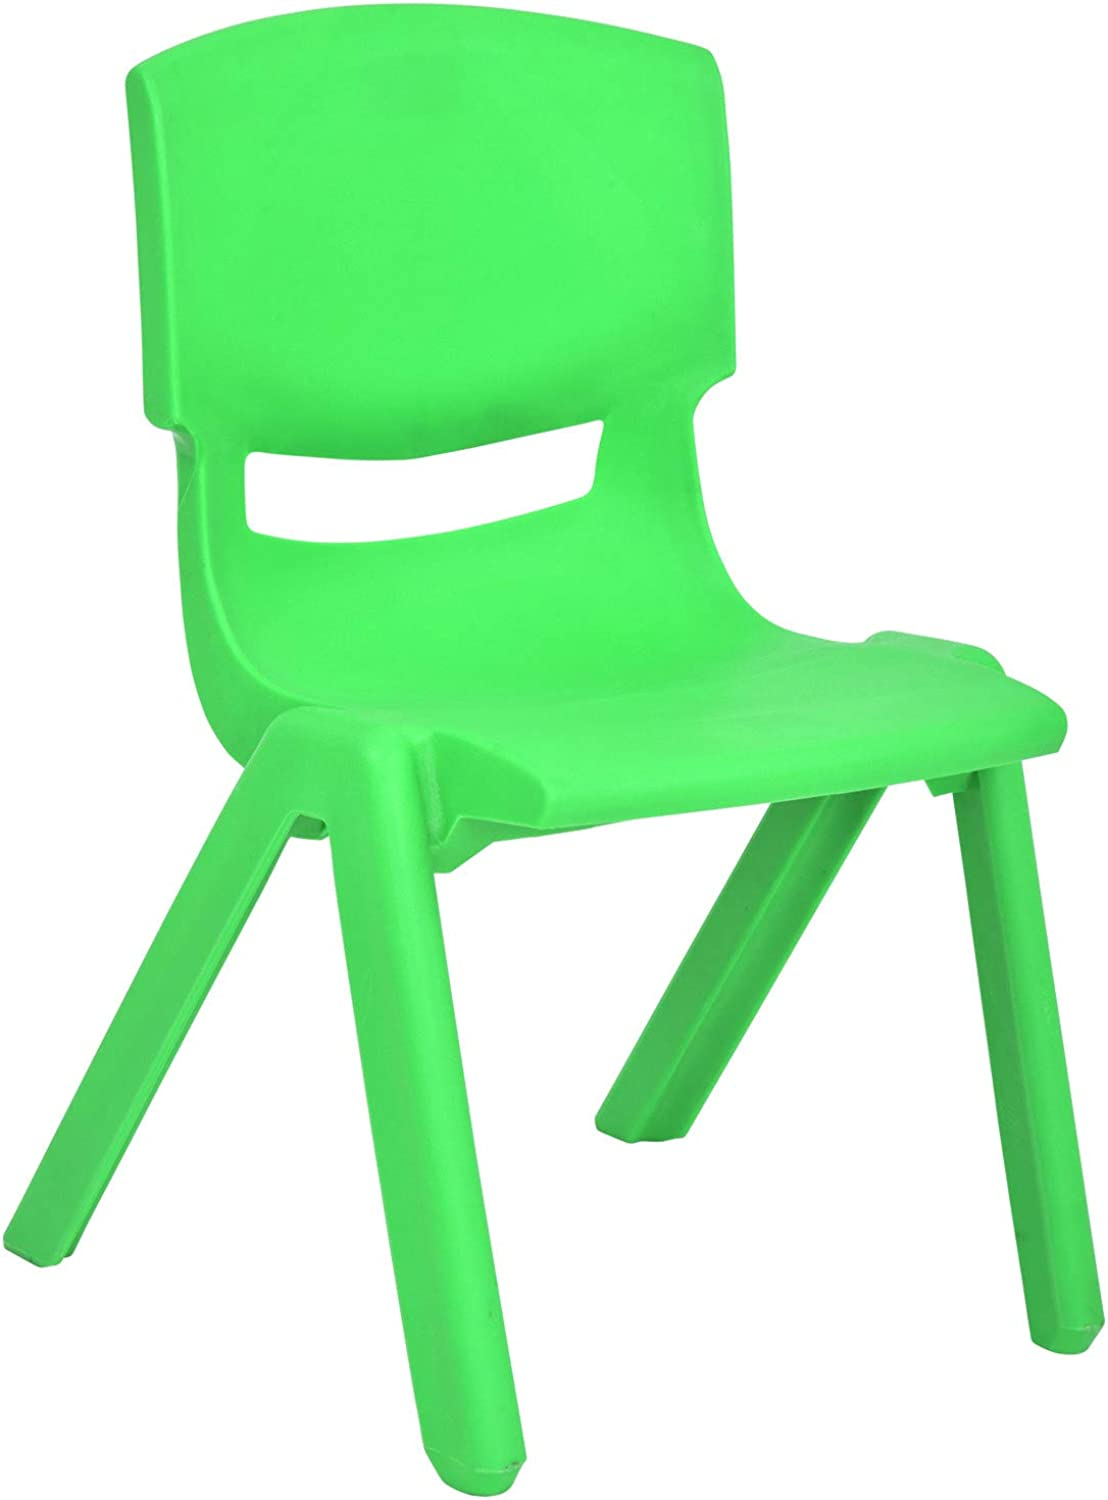 JOON Stackable Plastic Kids Learning Chairs, Green, 20.8x12.5 Inches